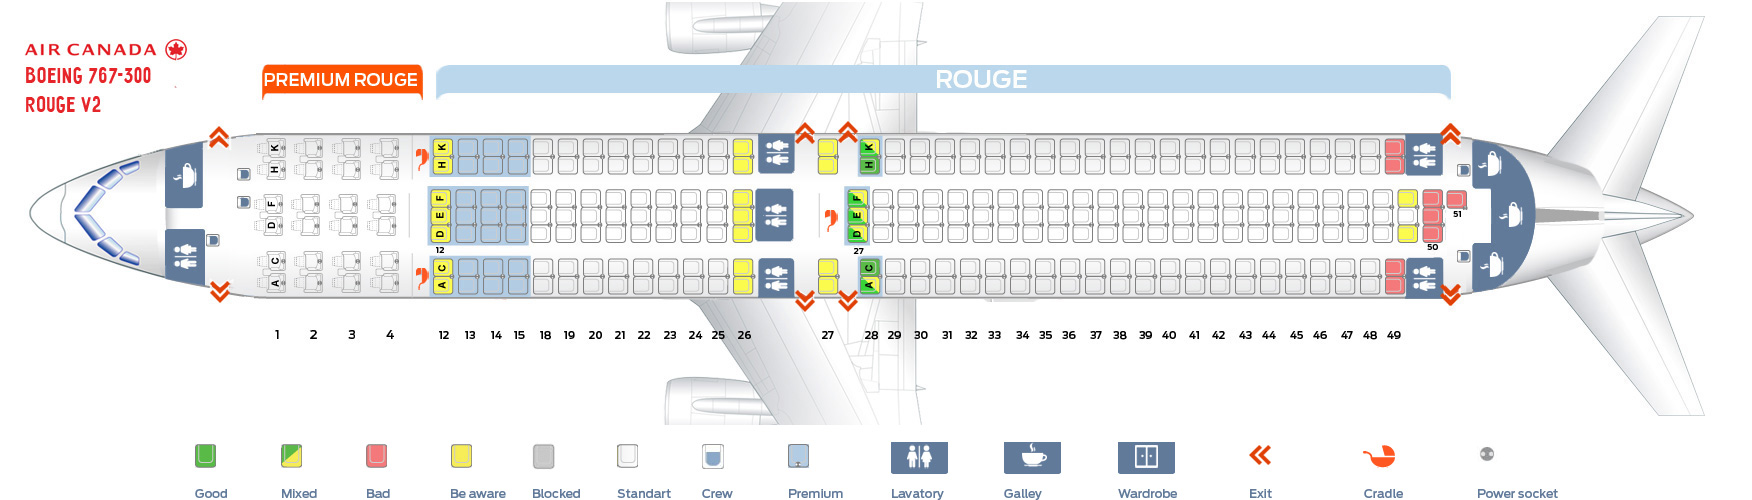 Seat map Air Canada Boeing-767-300 Rouge version 2